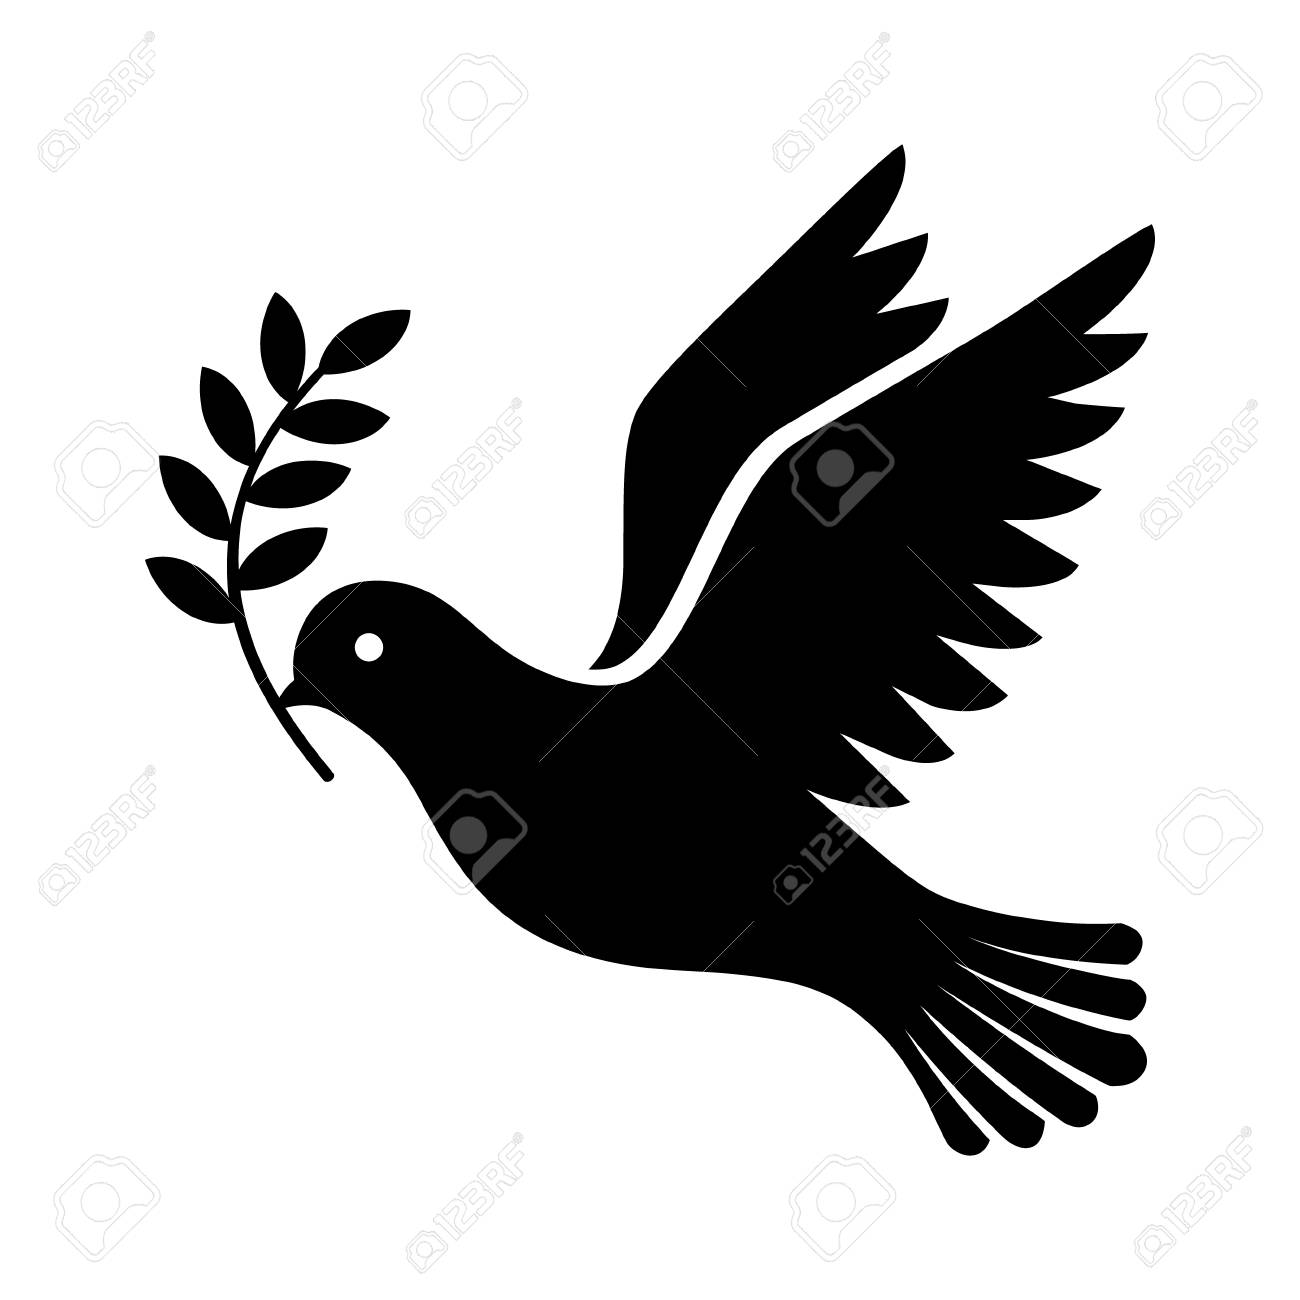 Flying dove holding an olive branch as a sign of peace flat vector icon for apps and websites - 70392184